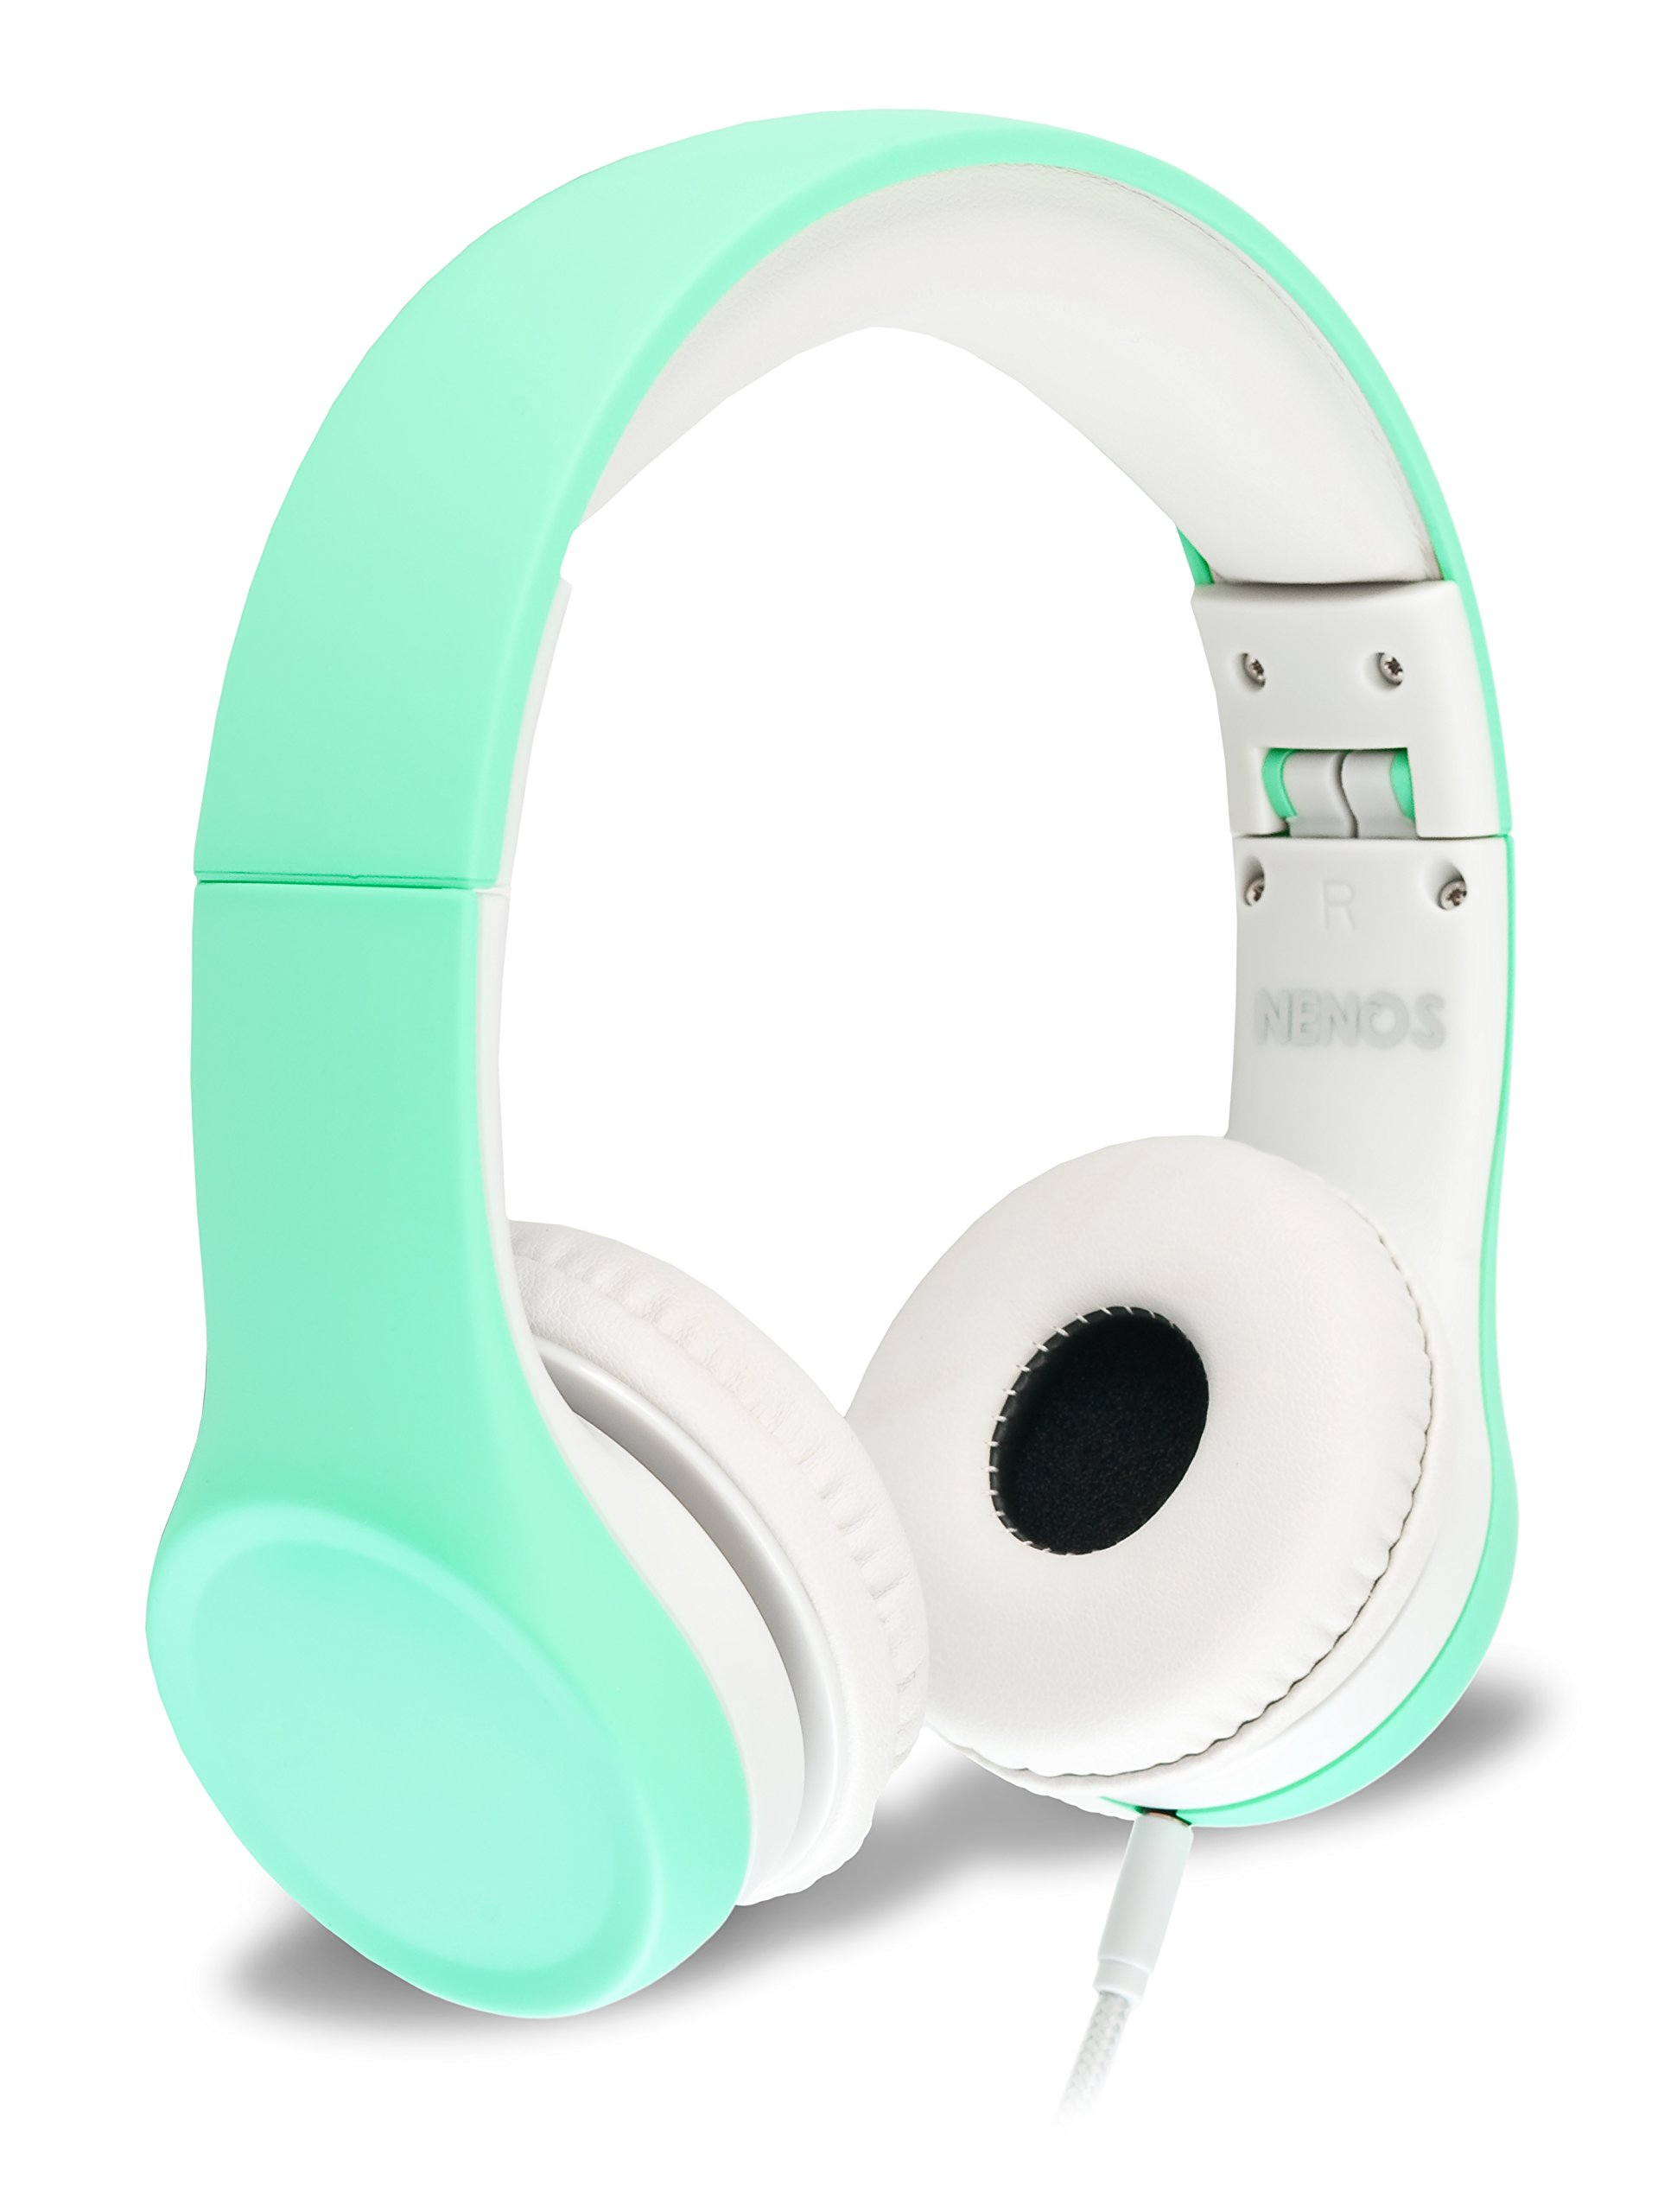 Nenos Children Headphones Kids Headphones Children's Headphones Over Ear Headphones Kids Computer Volume Limited Headphones for Kids Foldable (Mint) by Nenos